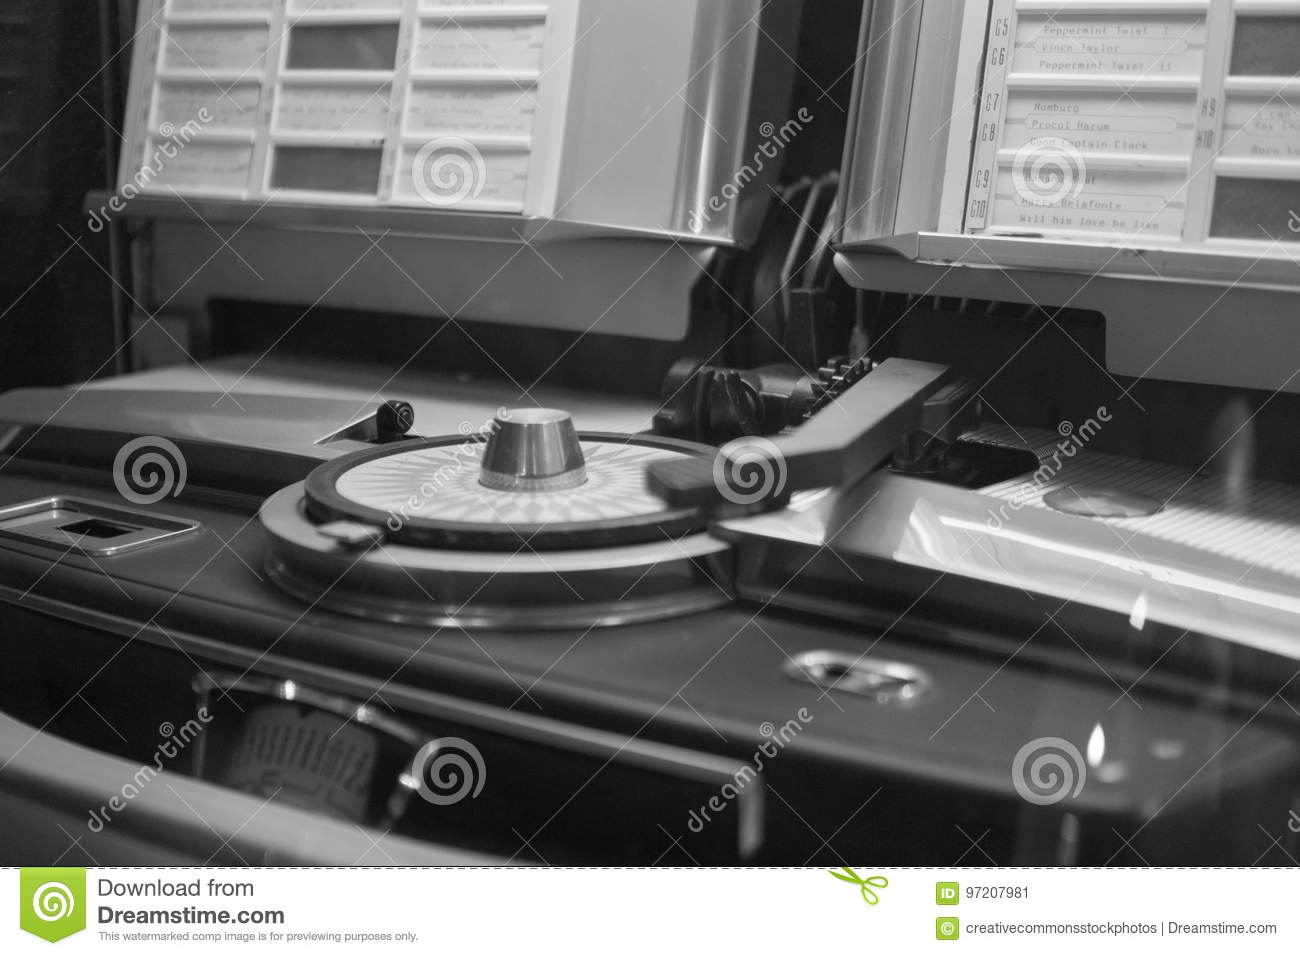 Closeup Photography Of Jukebox Picture  Image: 97207981